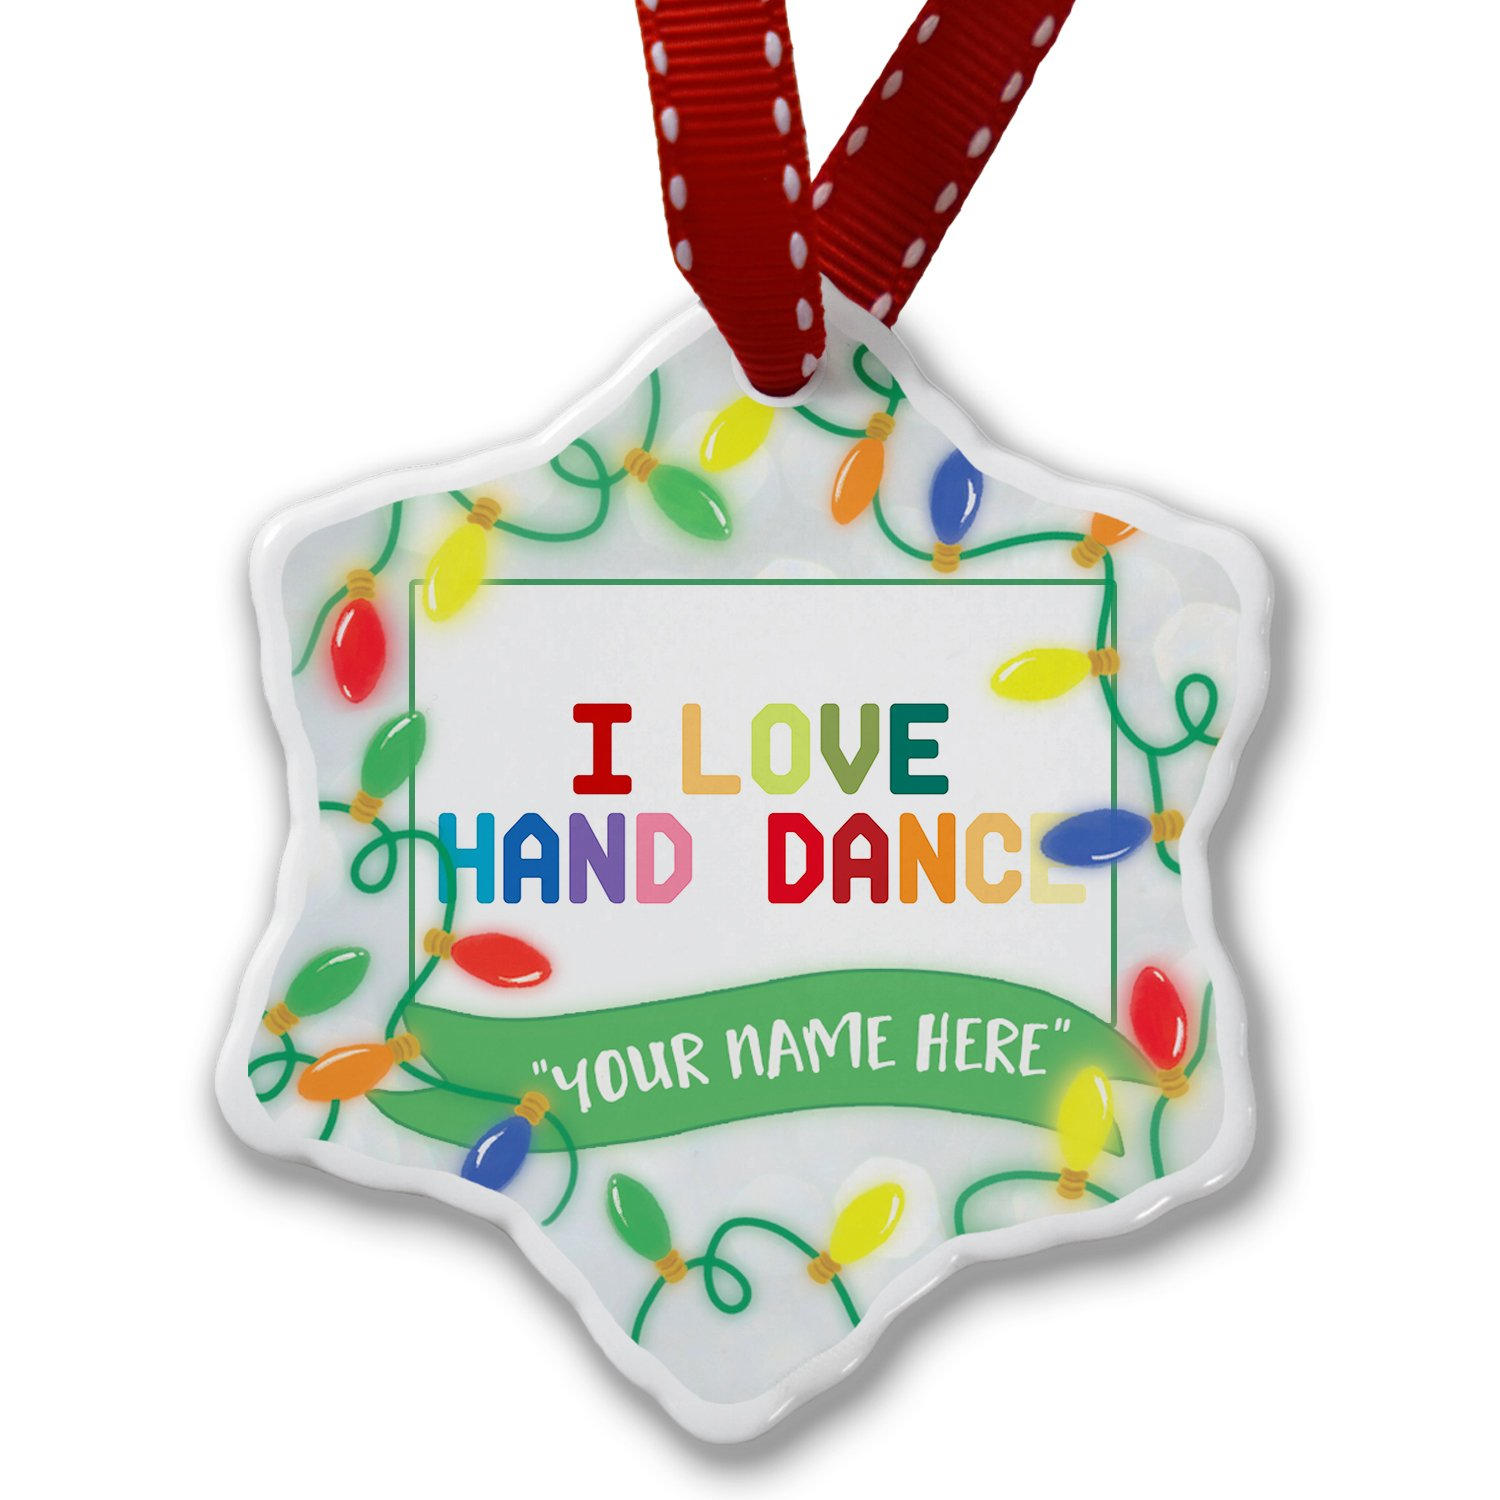 Personalized Name Christmas Ornament, I Love Hand Dance,Colorful NEONBLOND